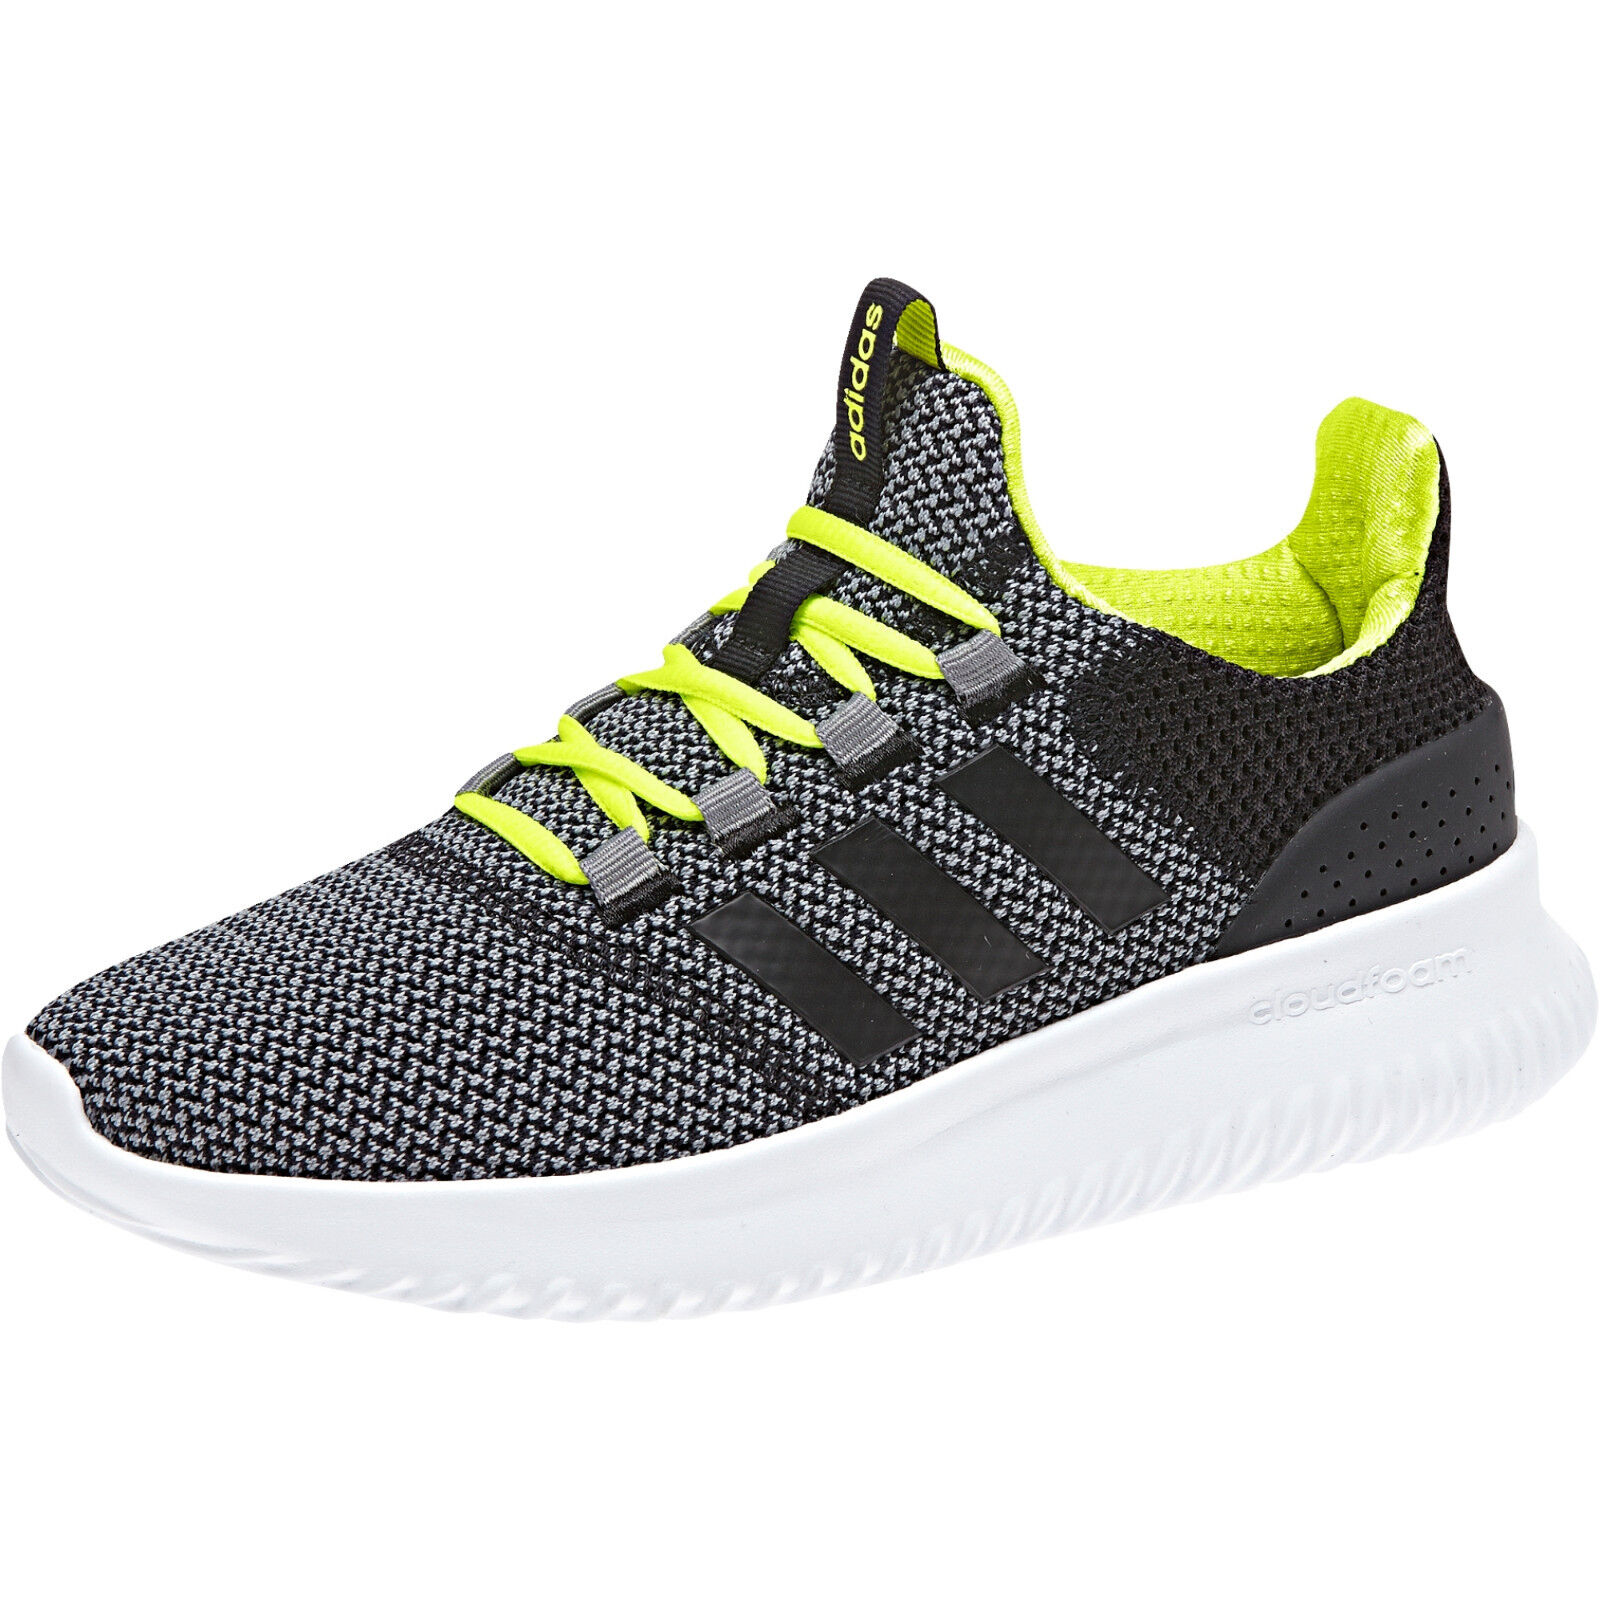 Adidas Neo Cloudfoam Ultimate 38 Kids Trainers Chaussures Enfants Neon Nmd